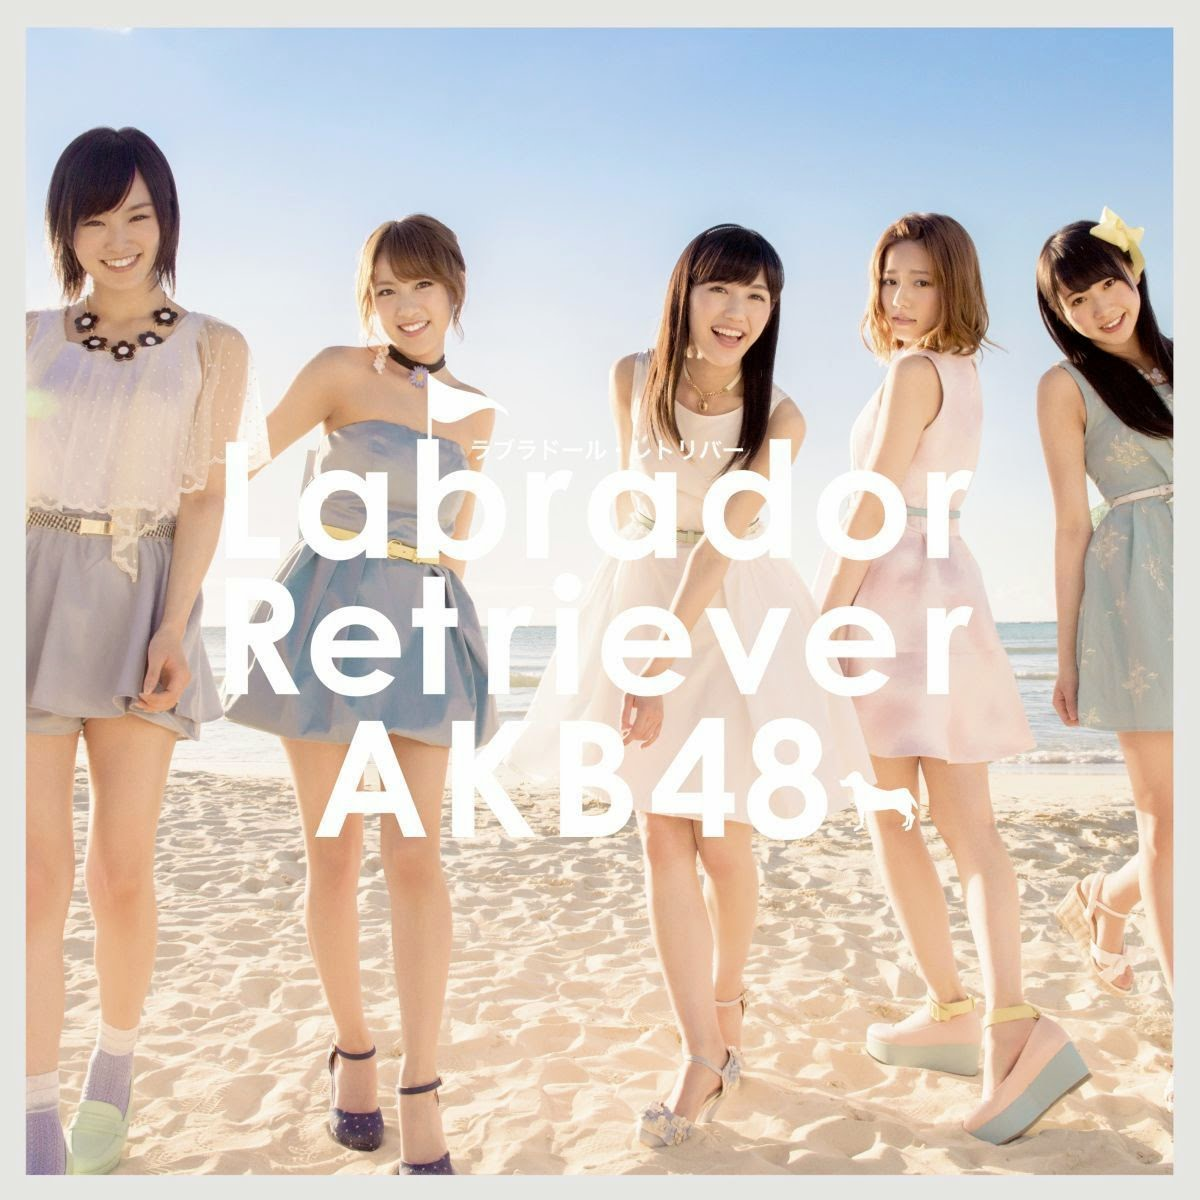 On the cover are Sayaka Yamamoto, Minami Takahashi, Mayu Watanabe, and Haruka Shimazaki. The girls had to go to Hawaii to film the music video for the song. All these girls are standing near the waves of the beach.